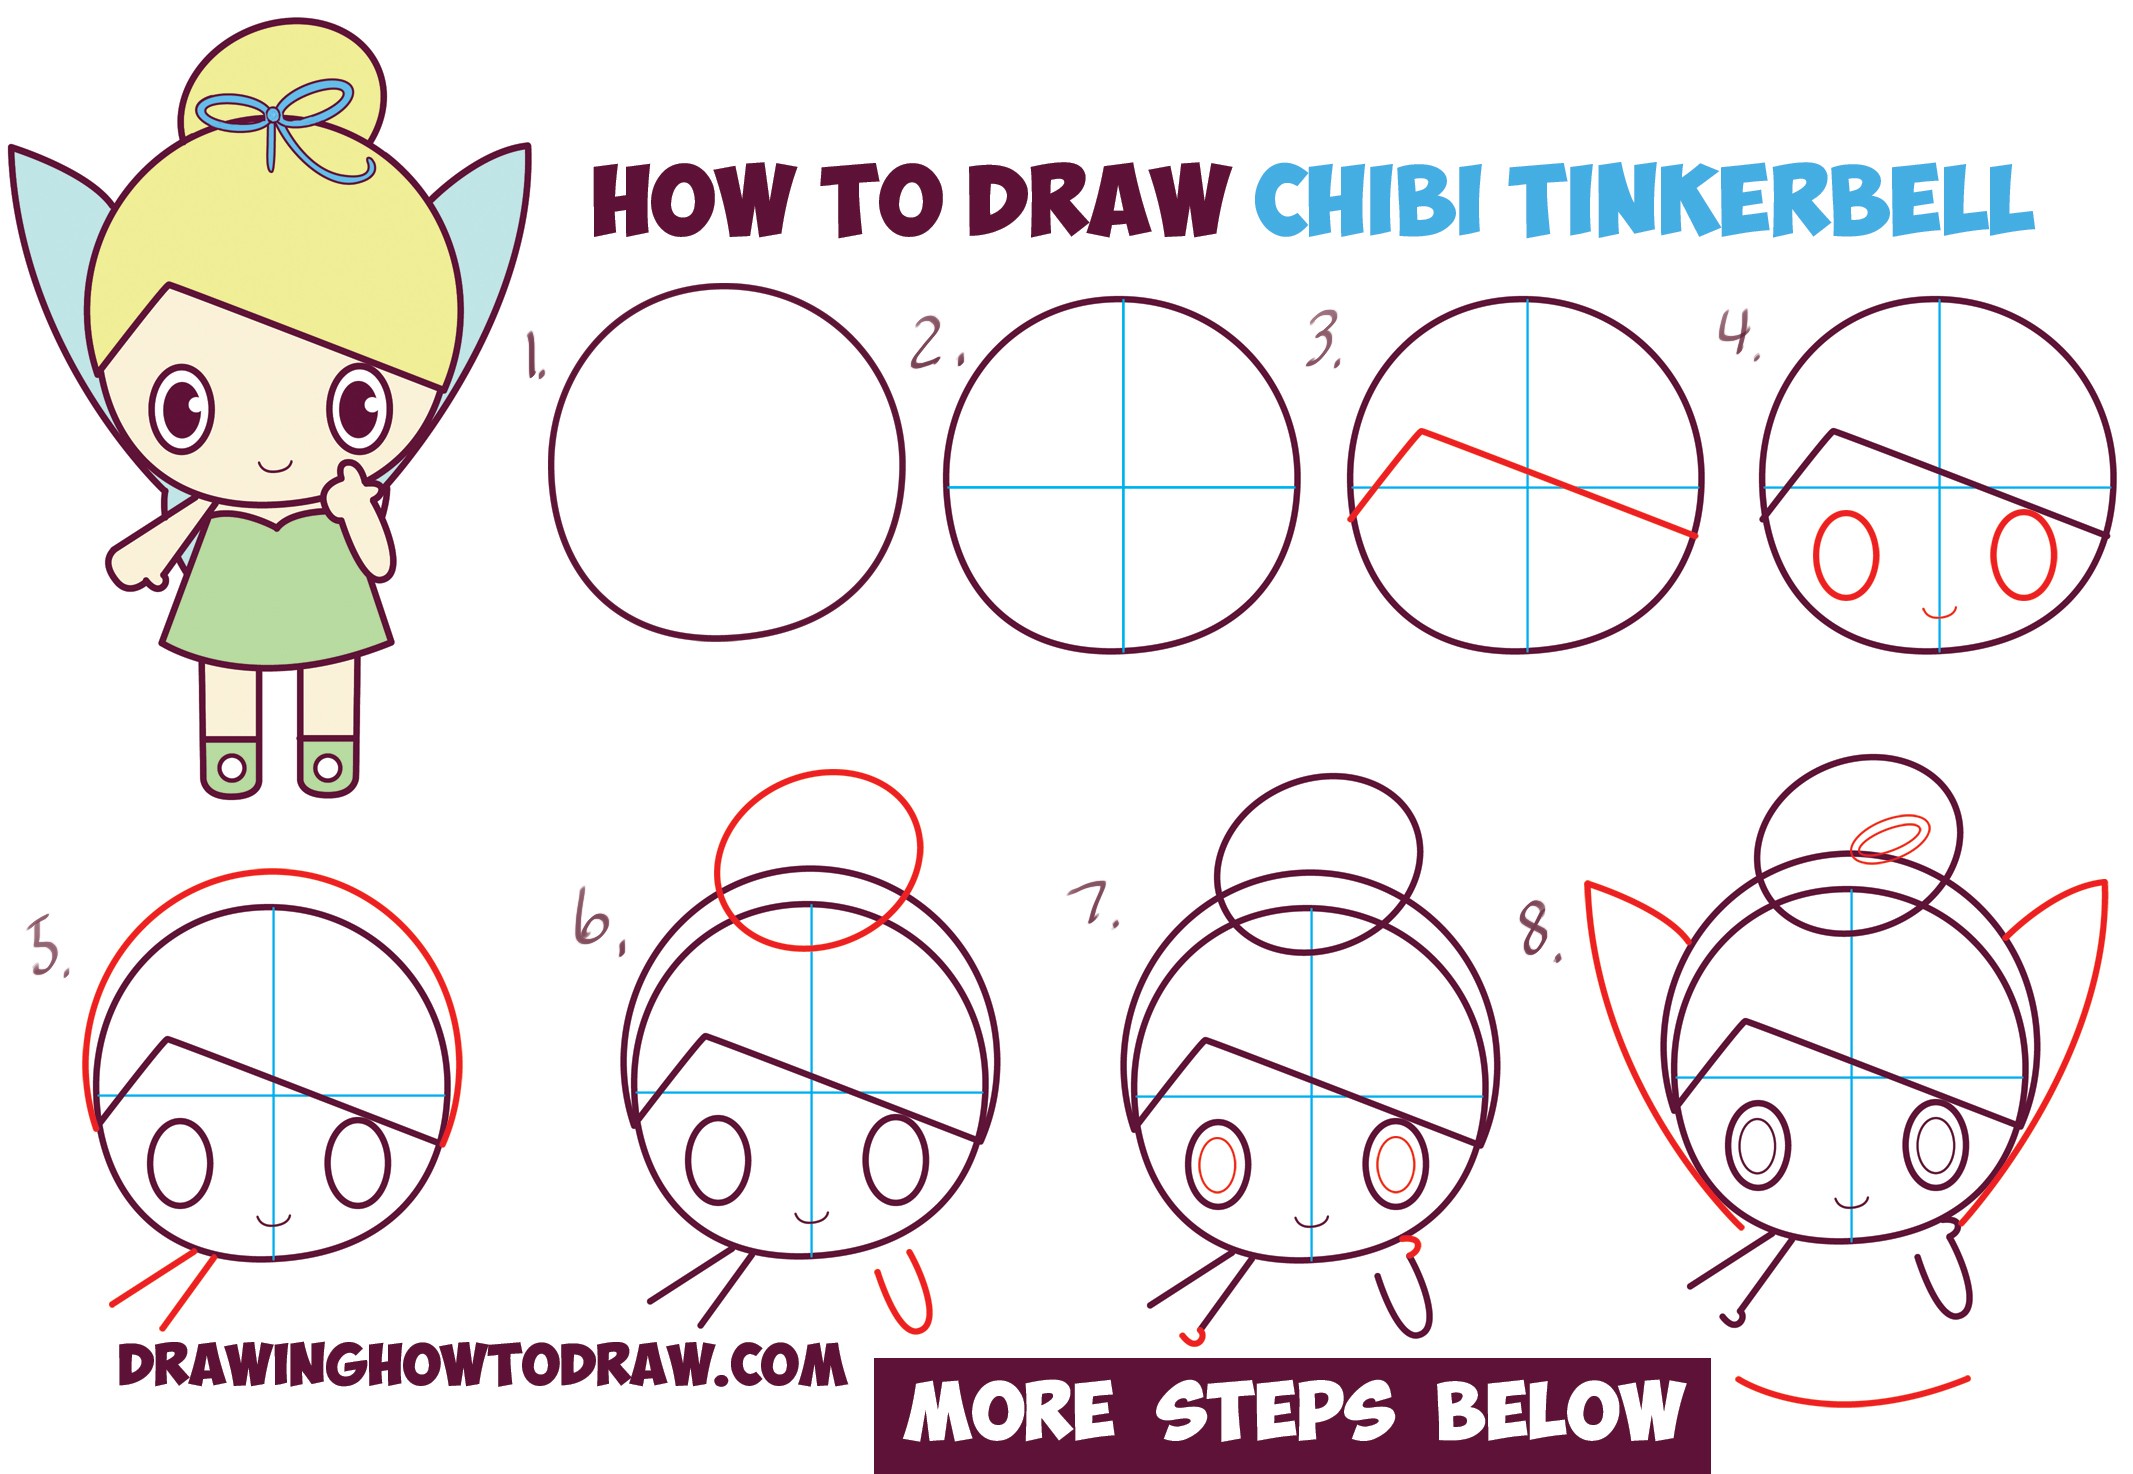 How to draw chibi tinkerbell the disney fairy in easy for How to draw things step by step